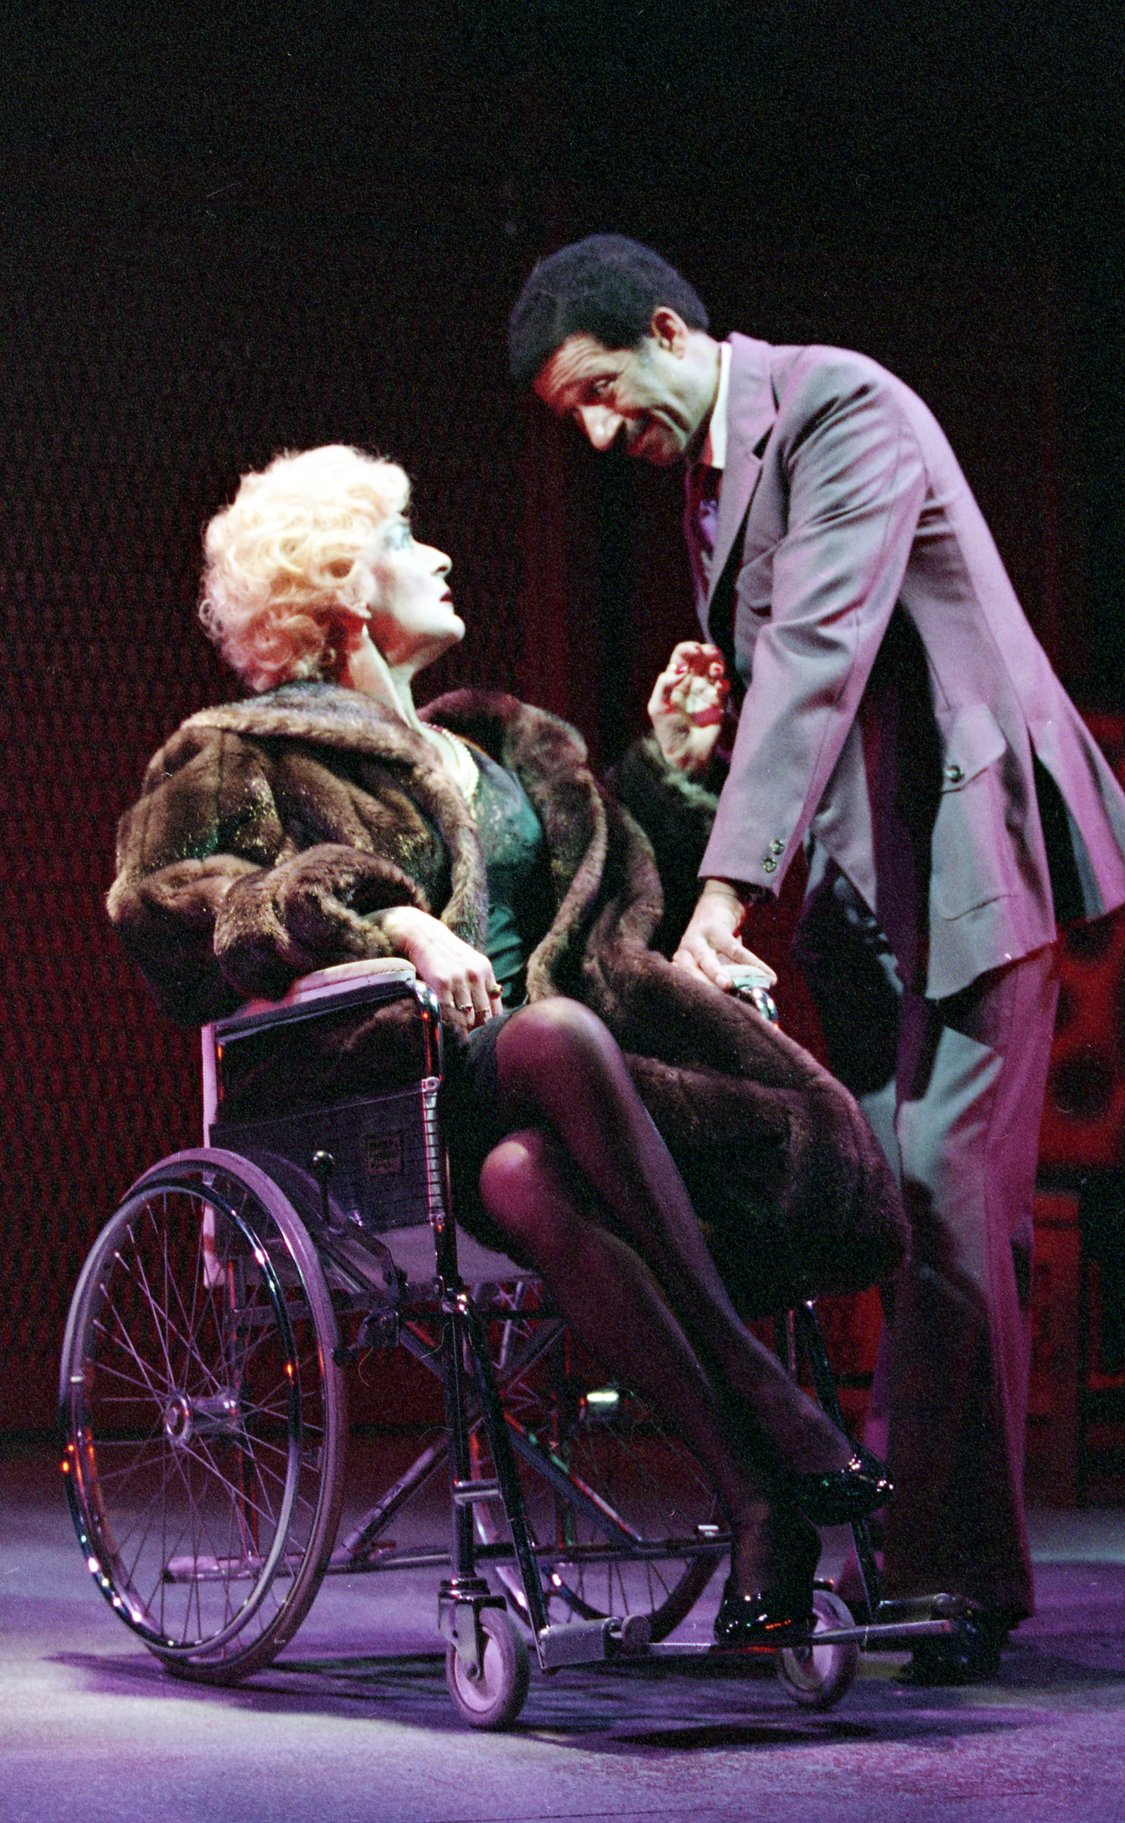 A woman in furs sits in a wheelchair.